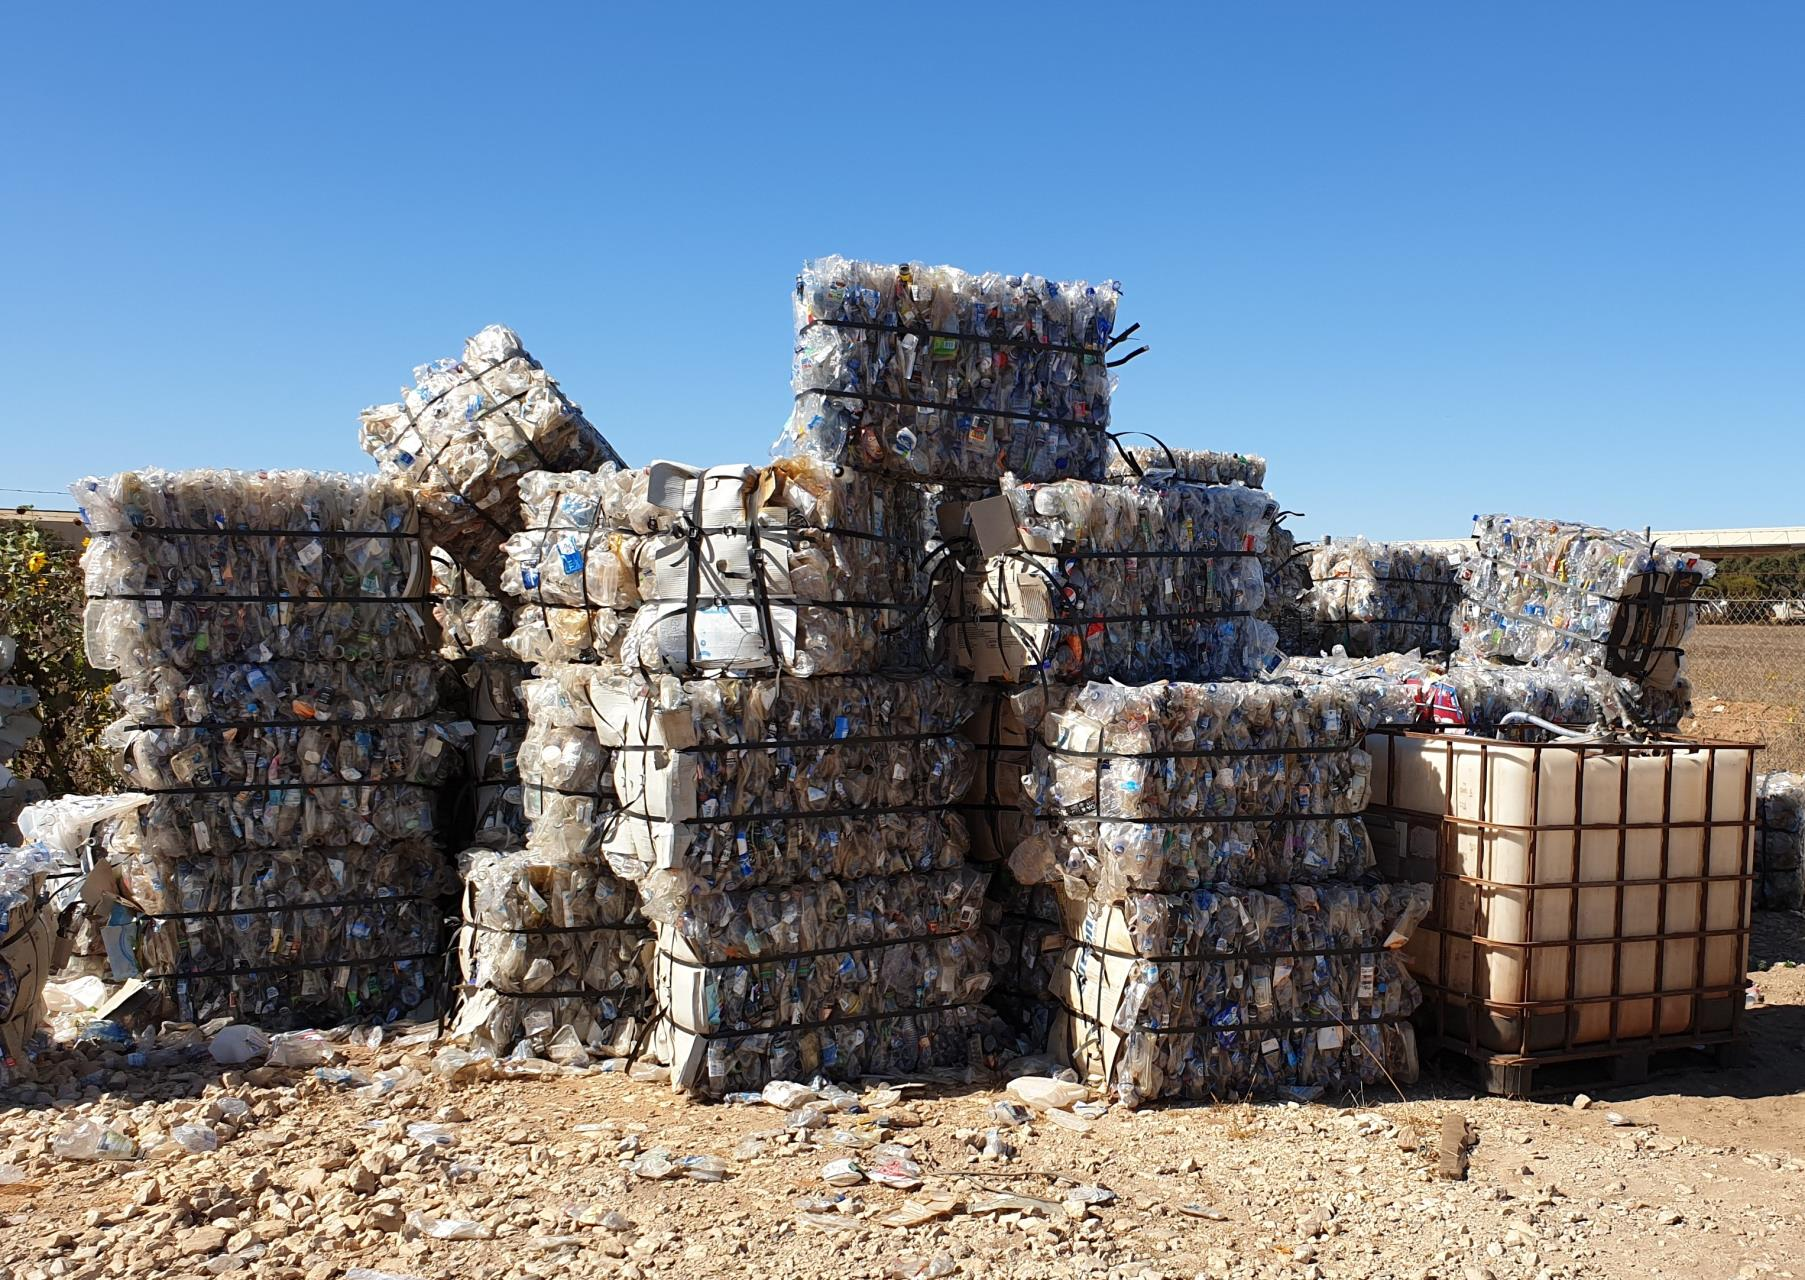 Bales of plastic bottles ready for recycling